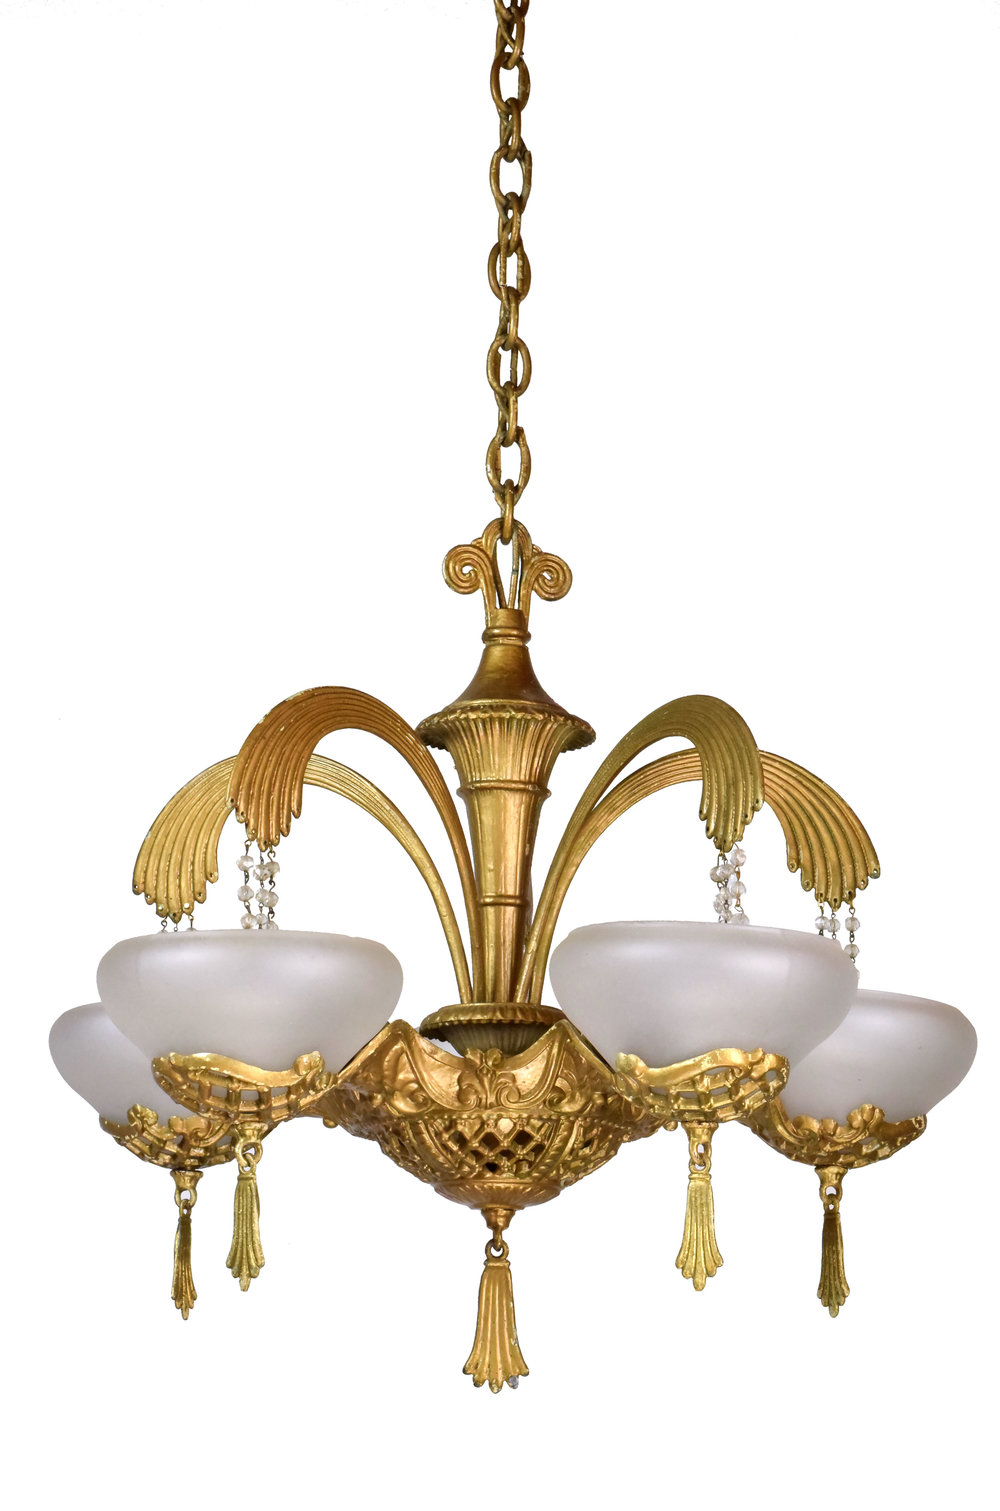 46566-art-deco-brass-chandelier-front-view.jpg